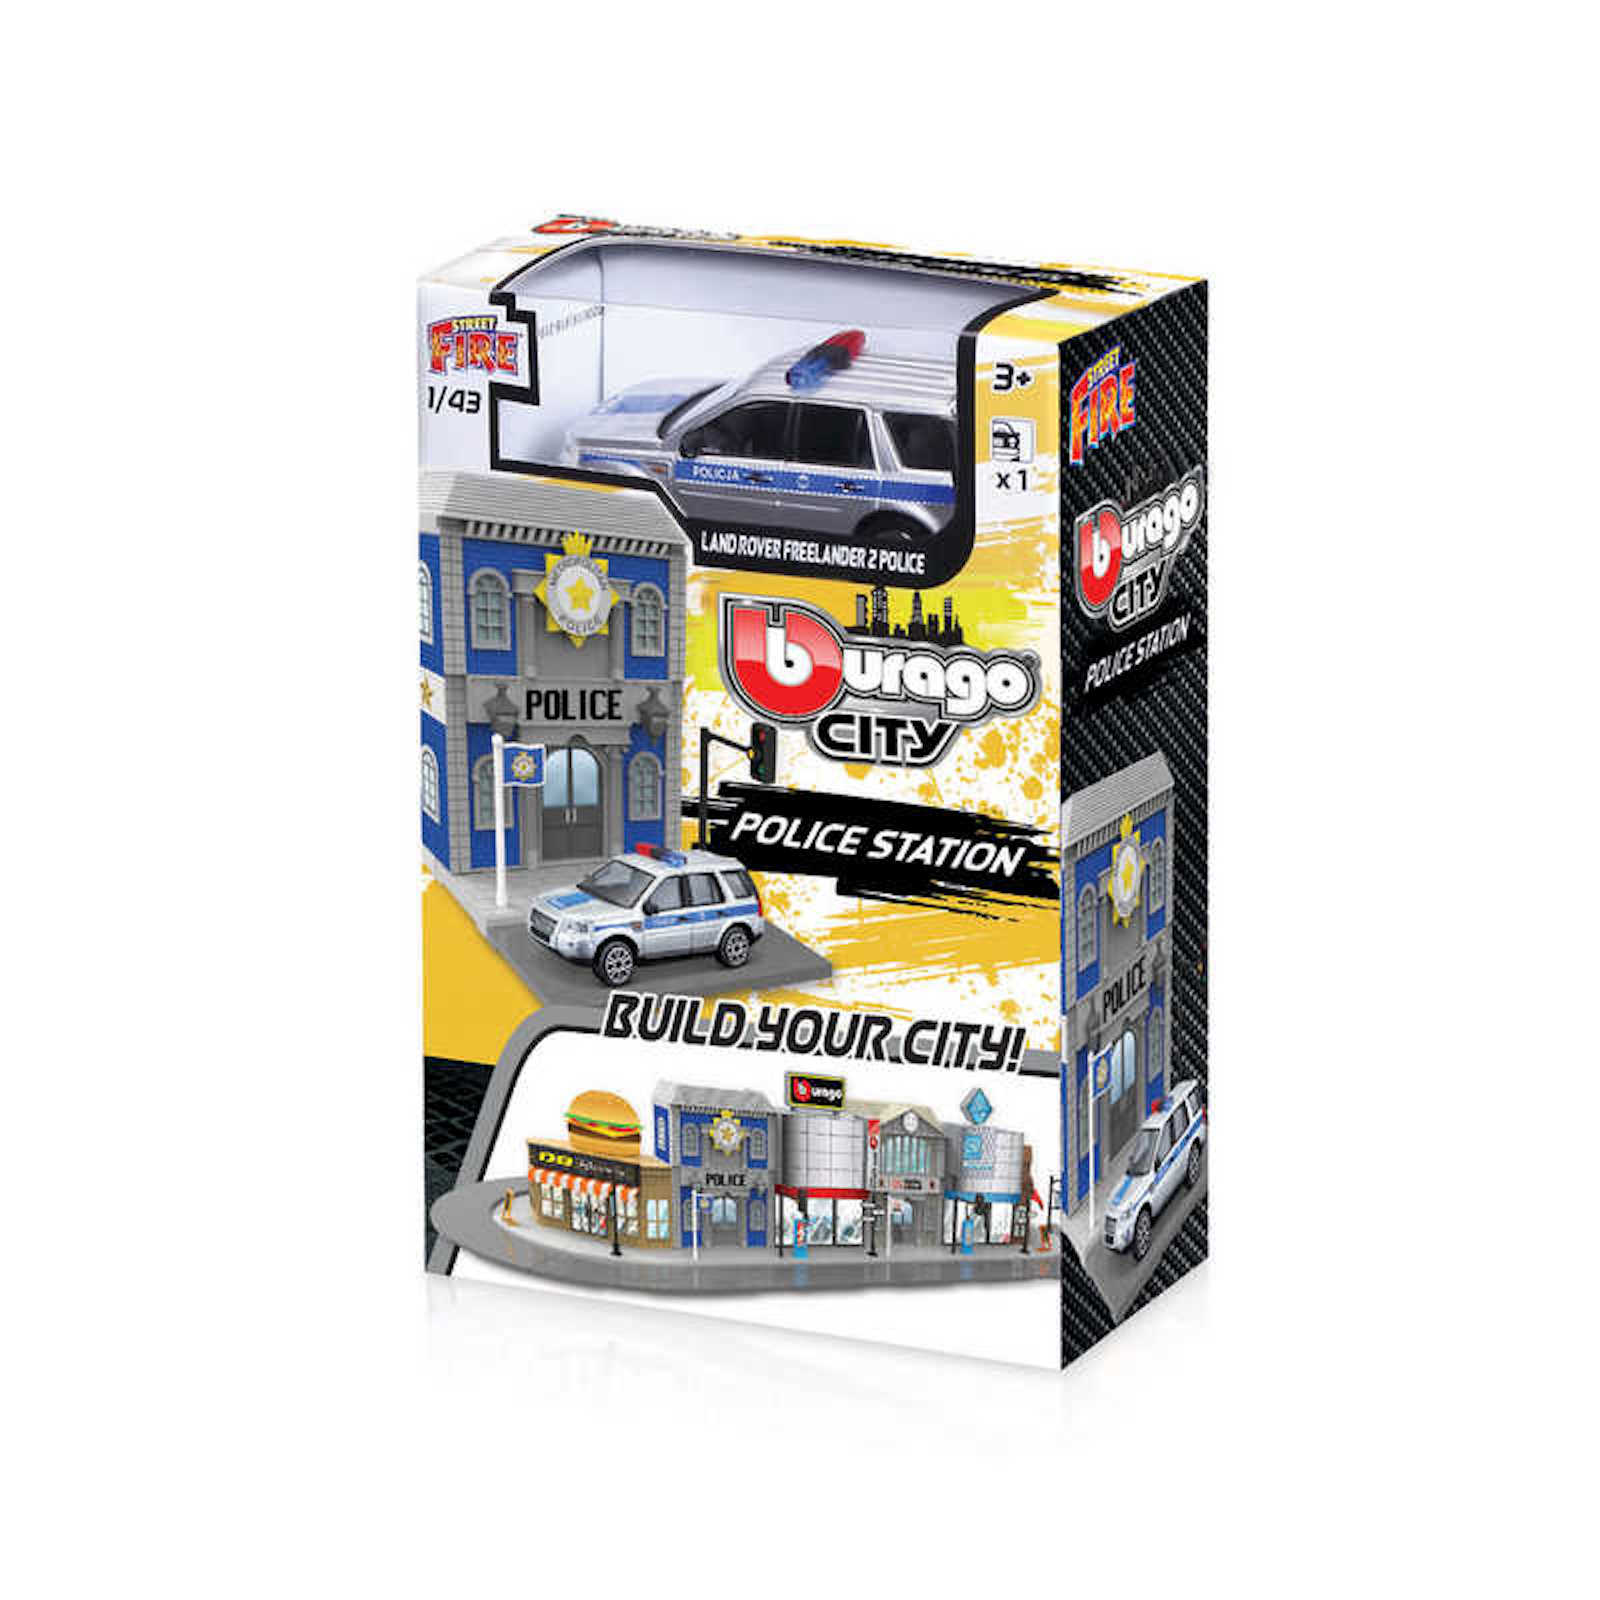 Build your City Police Station Land Rover Freelander Bburago Street Fire 1-43 Scale Model Toy Childs Kids Dads Birthday Present Gift